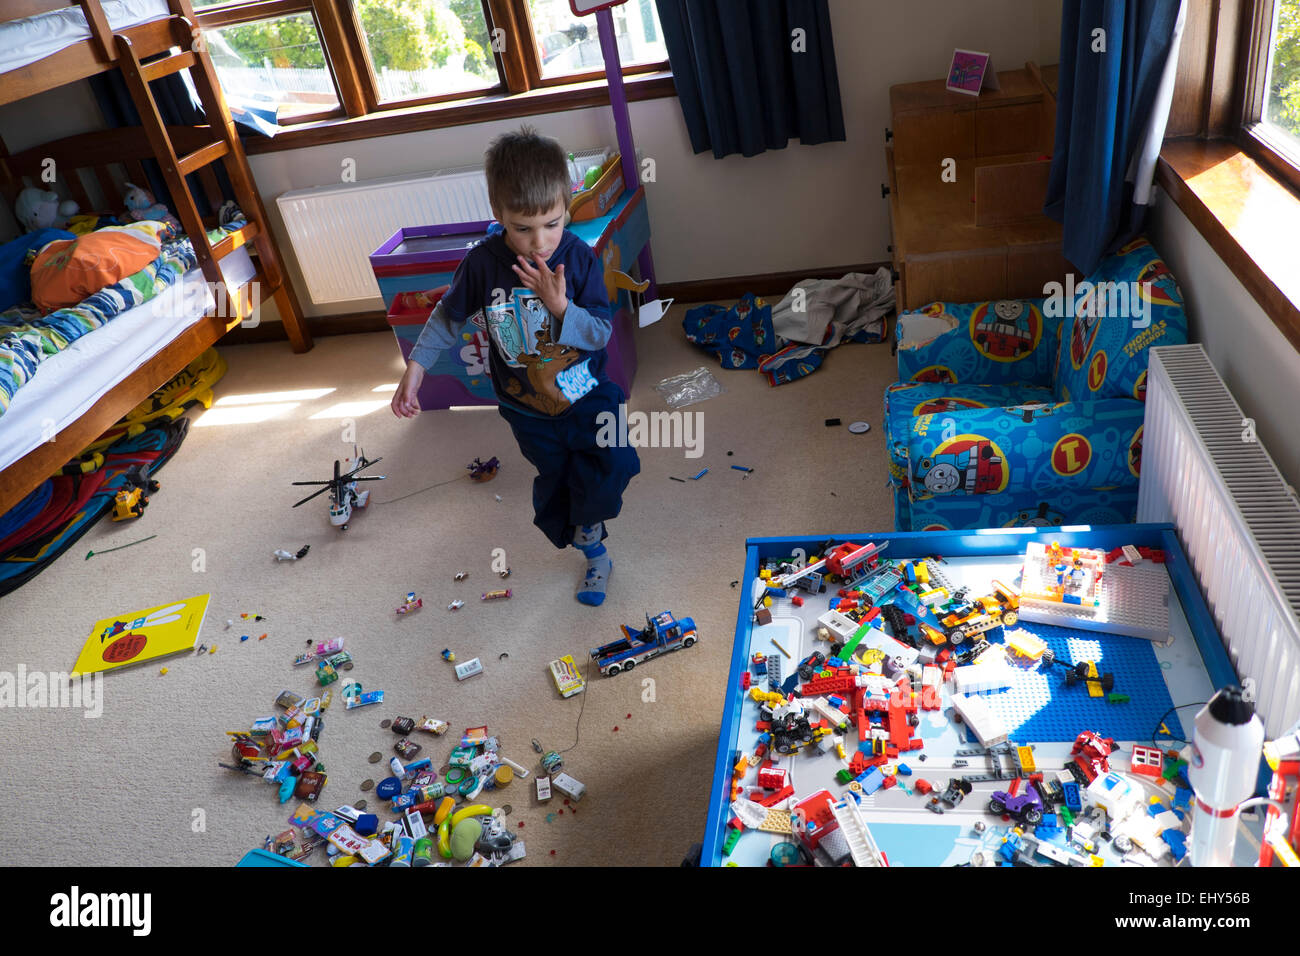 Boy aged four years playing with Lego building blocks in bedroom - Stock Image